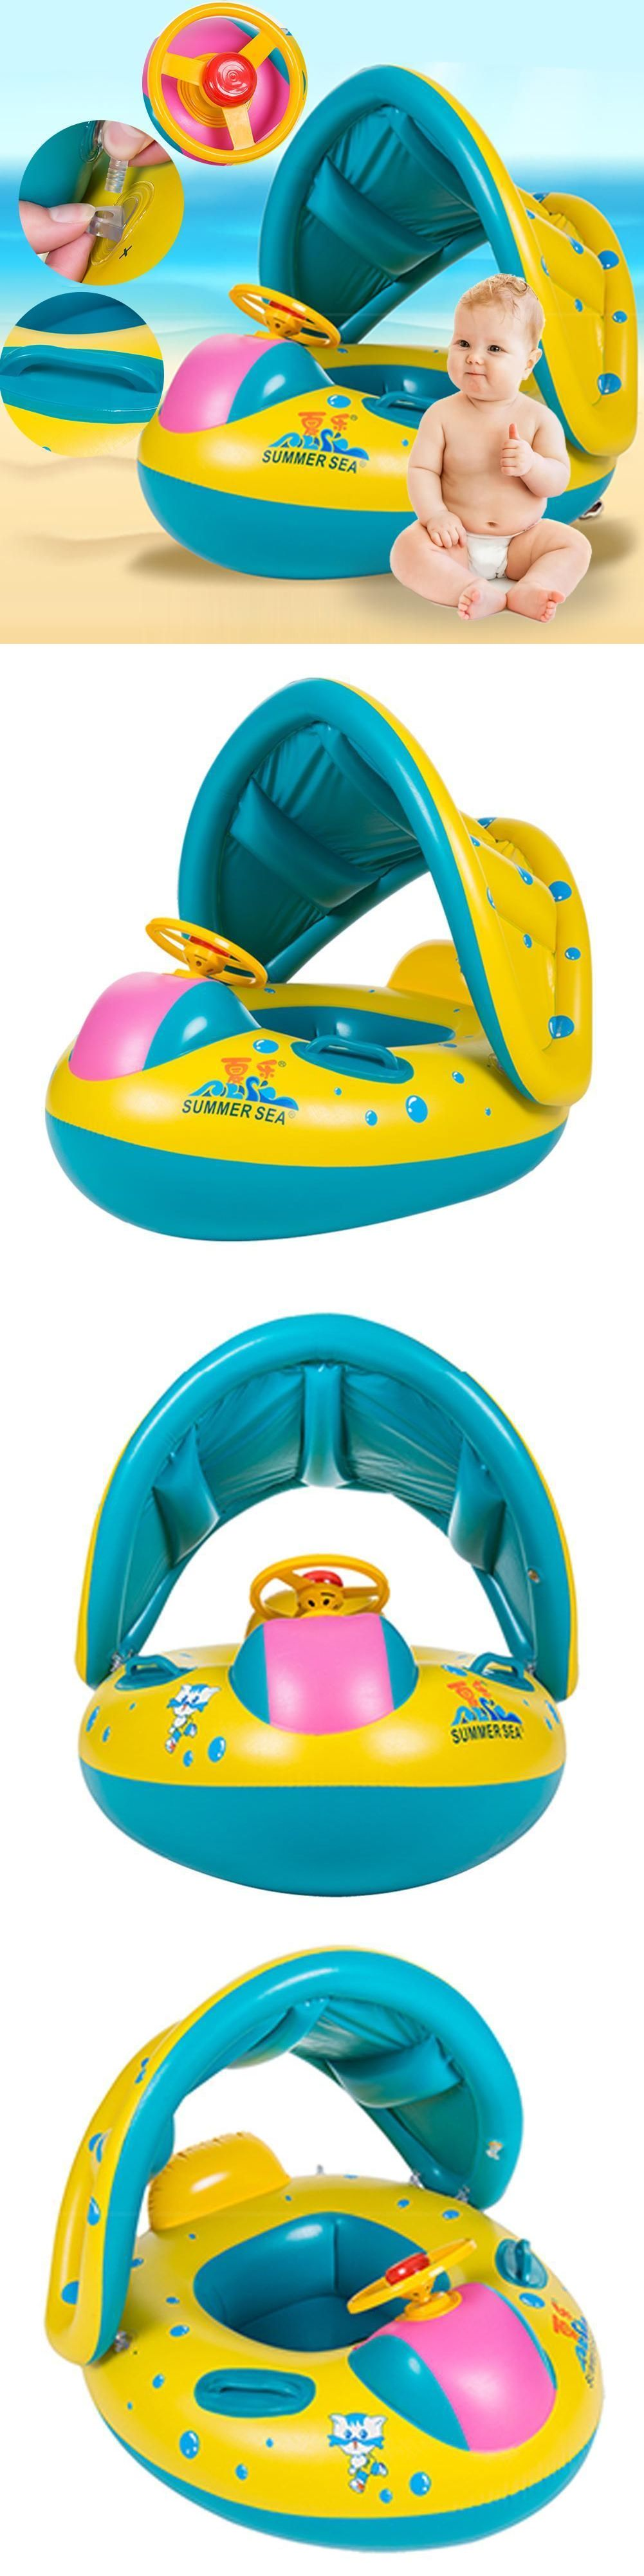 Bath Tub Seats and Rings 162024: Kids Inflatable Ring Yacht ...